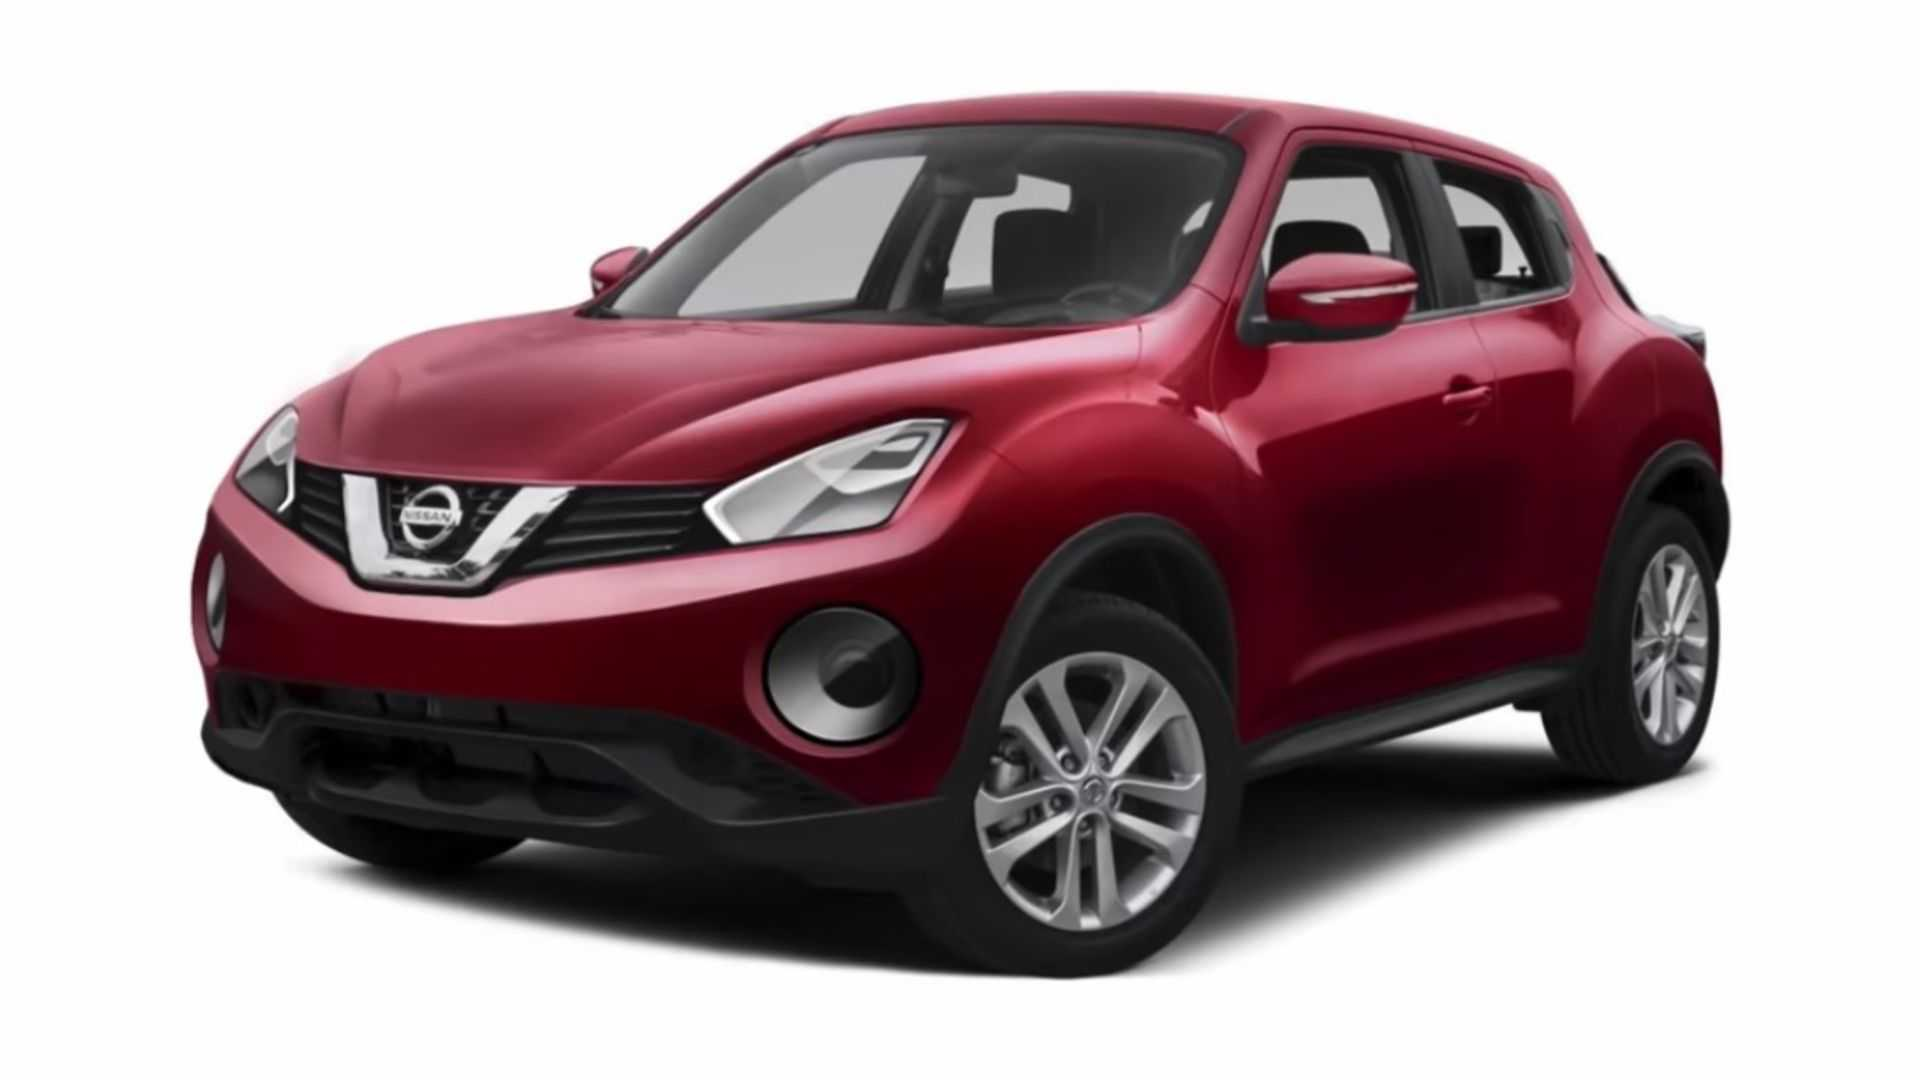 Nissan Juke redesign The Sketch Monkey